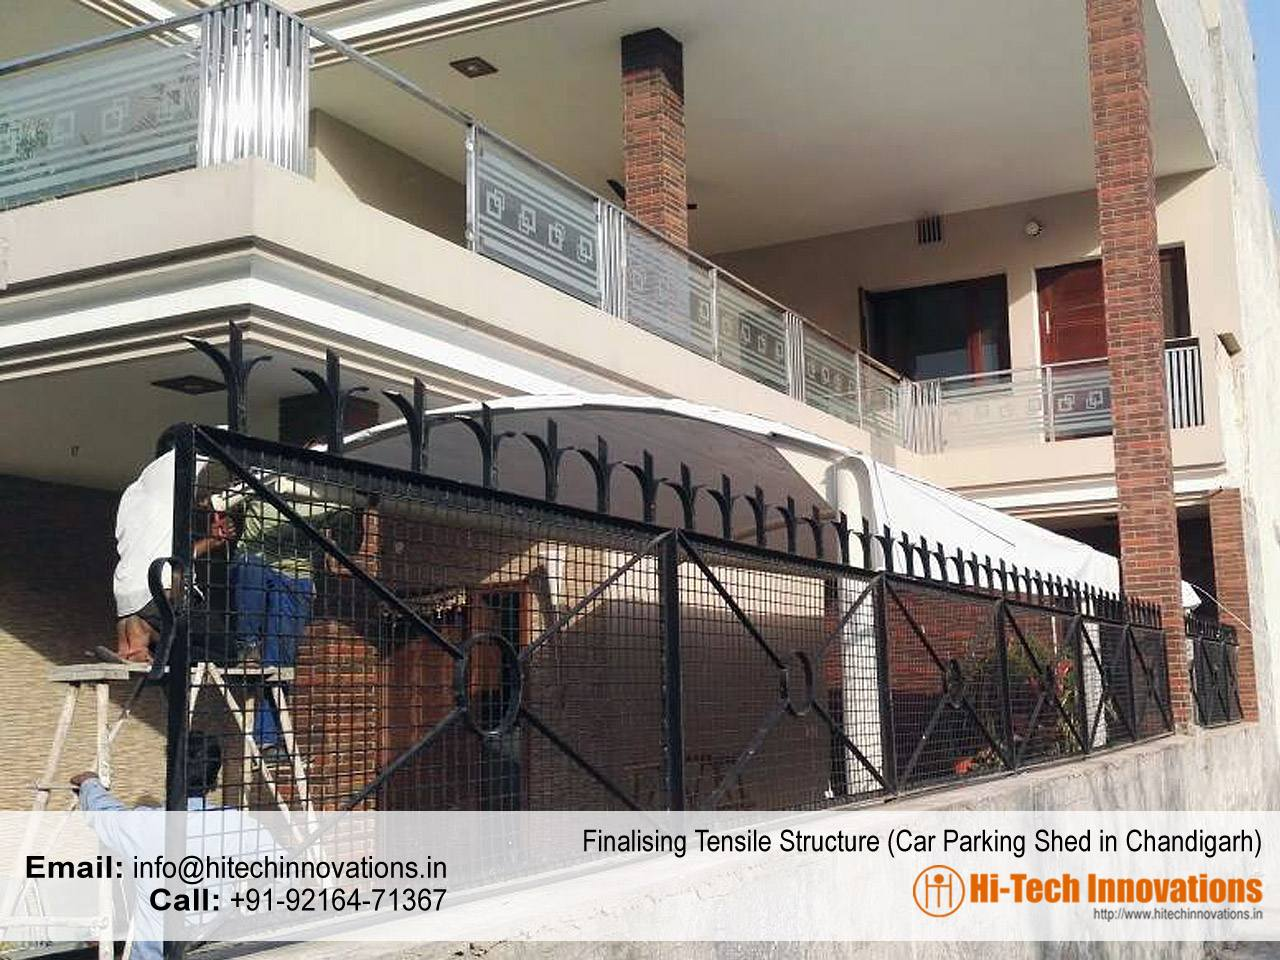 Finalizing Tensile Structure in Chandigarh